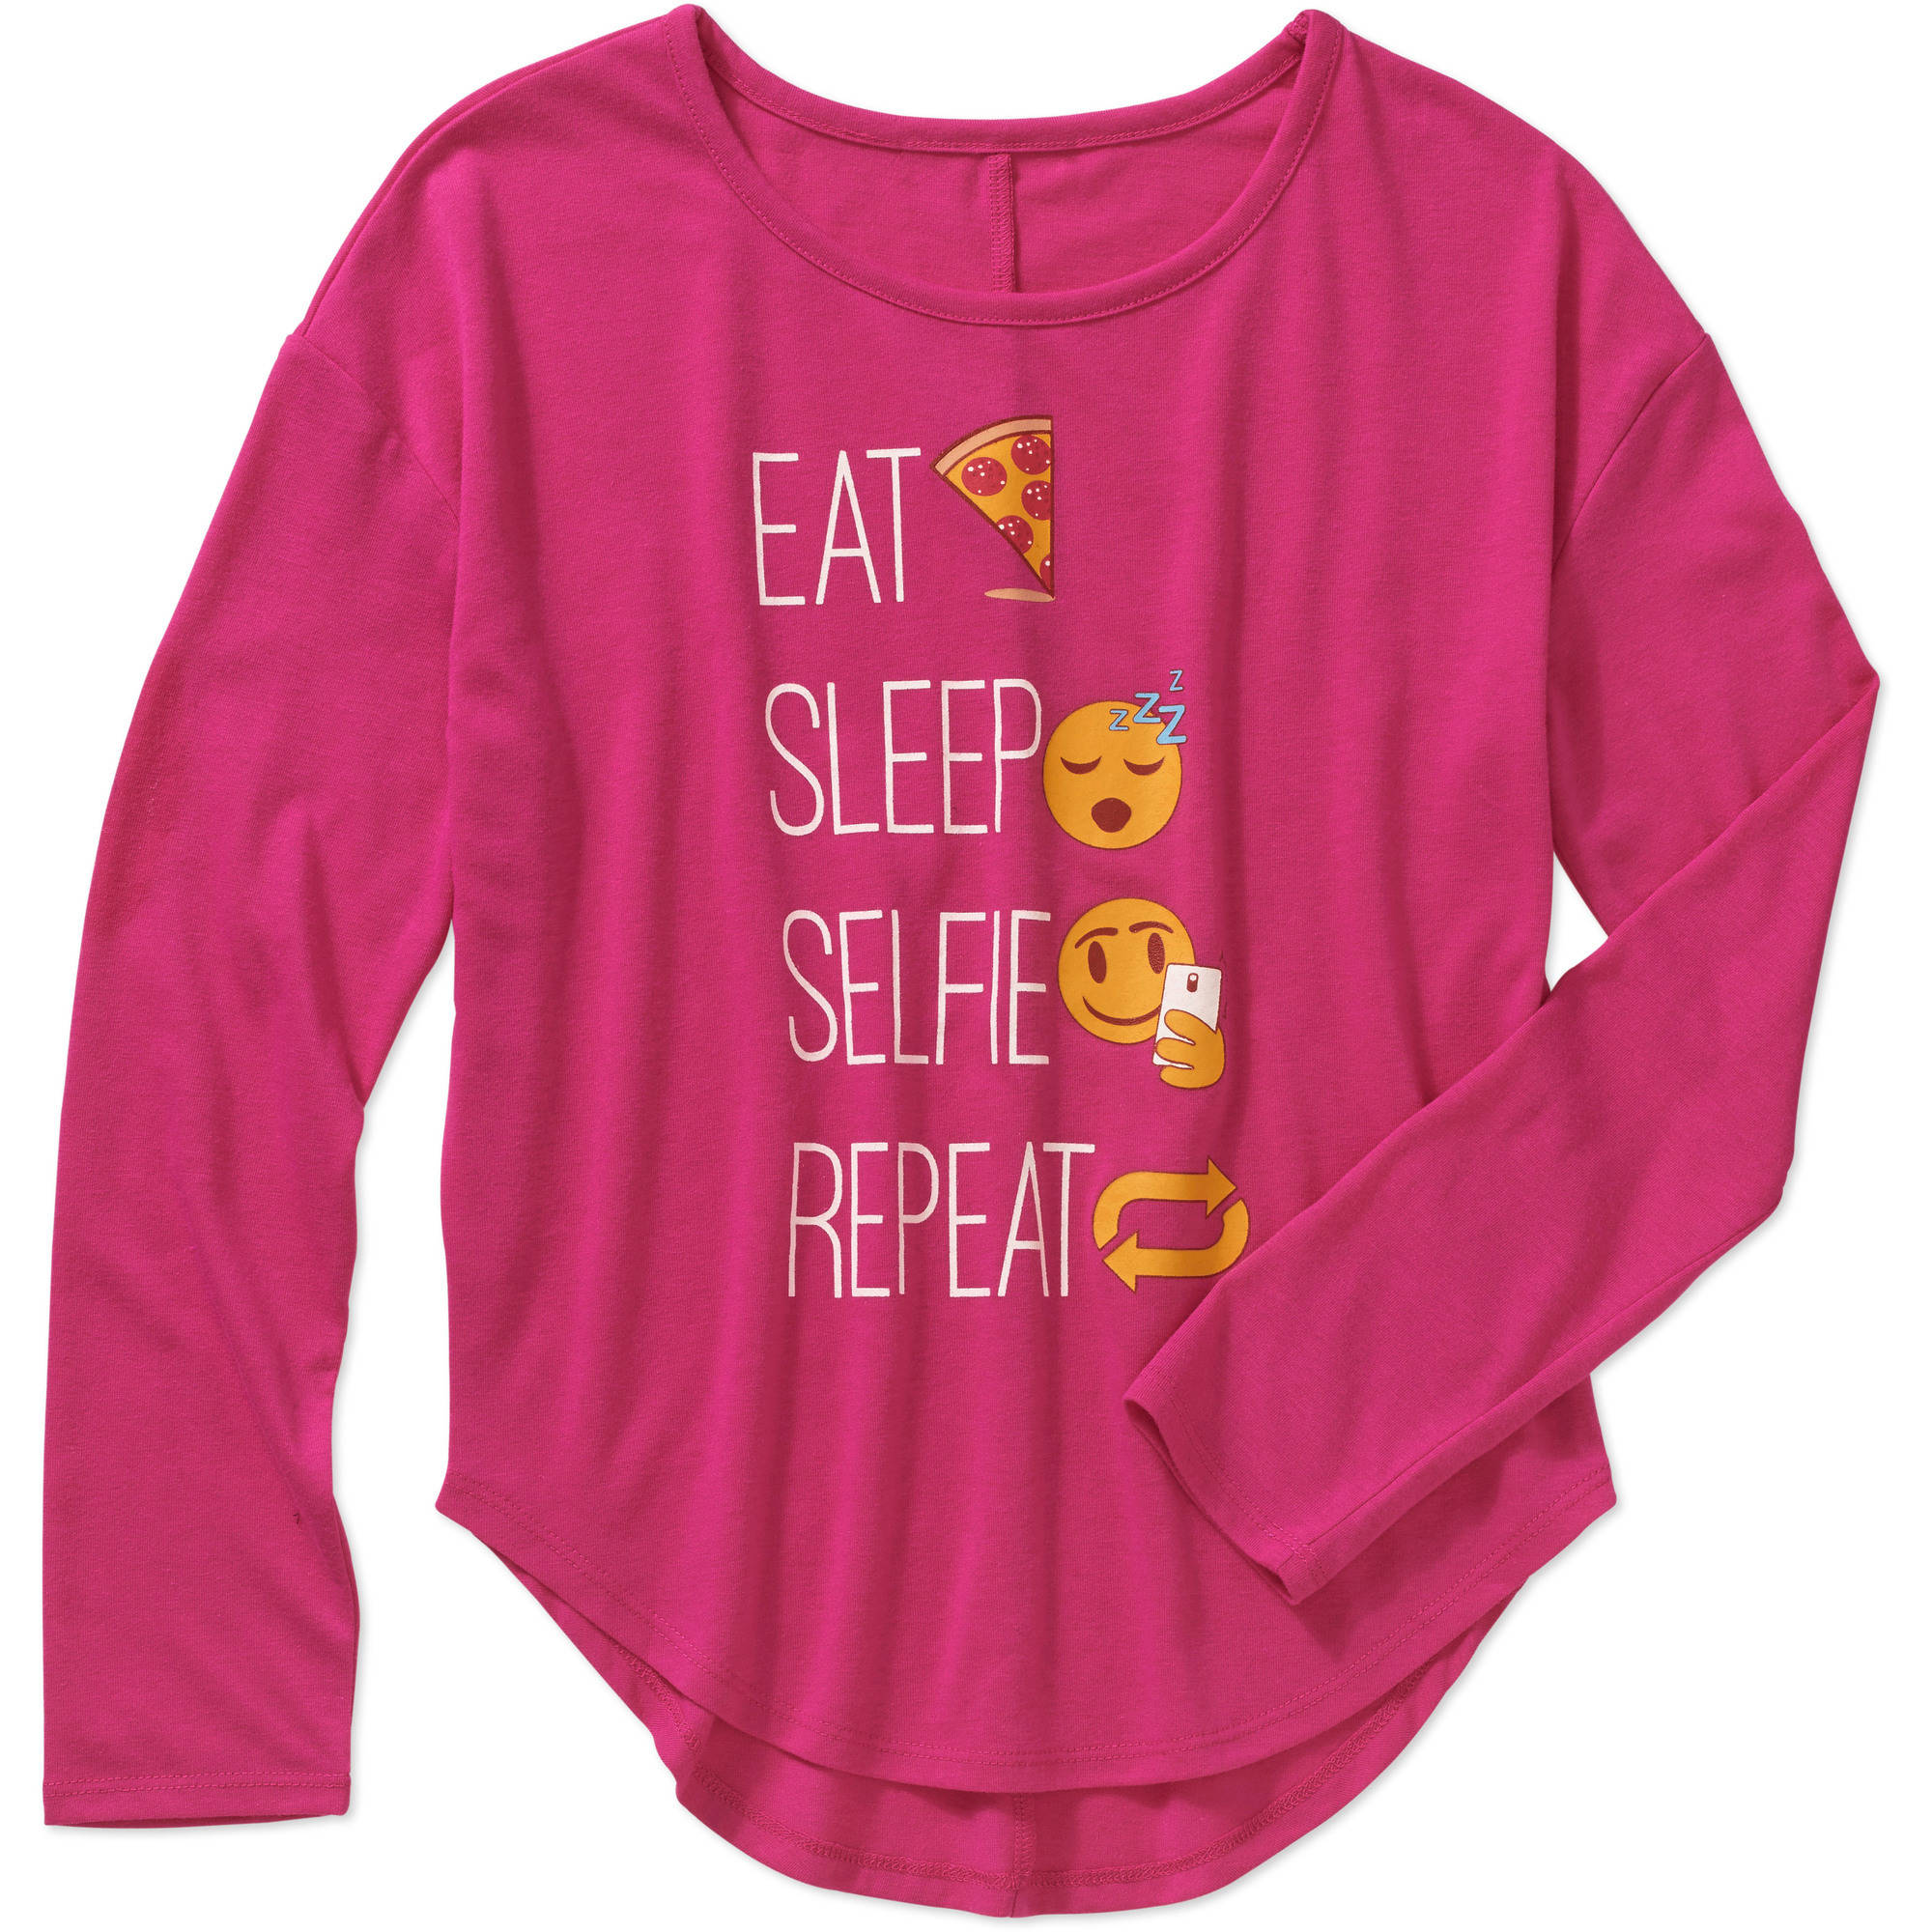 Gems And Jets Girls' Long Sleeve Crew Neck Eat, Sleep, Selfie, Repeat Graphic Tee